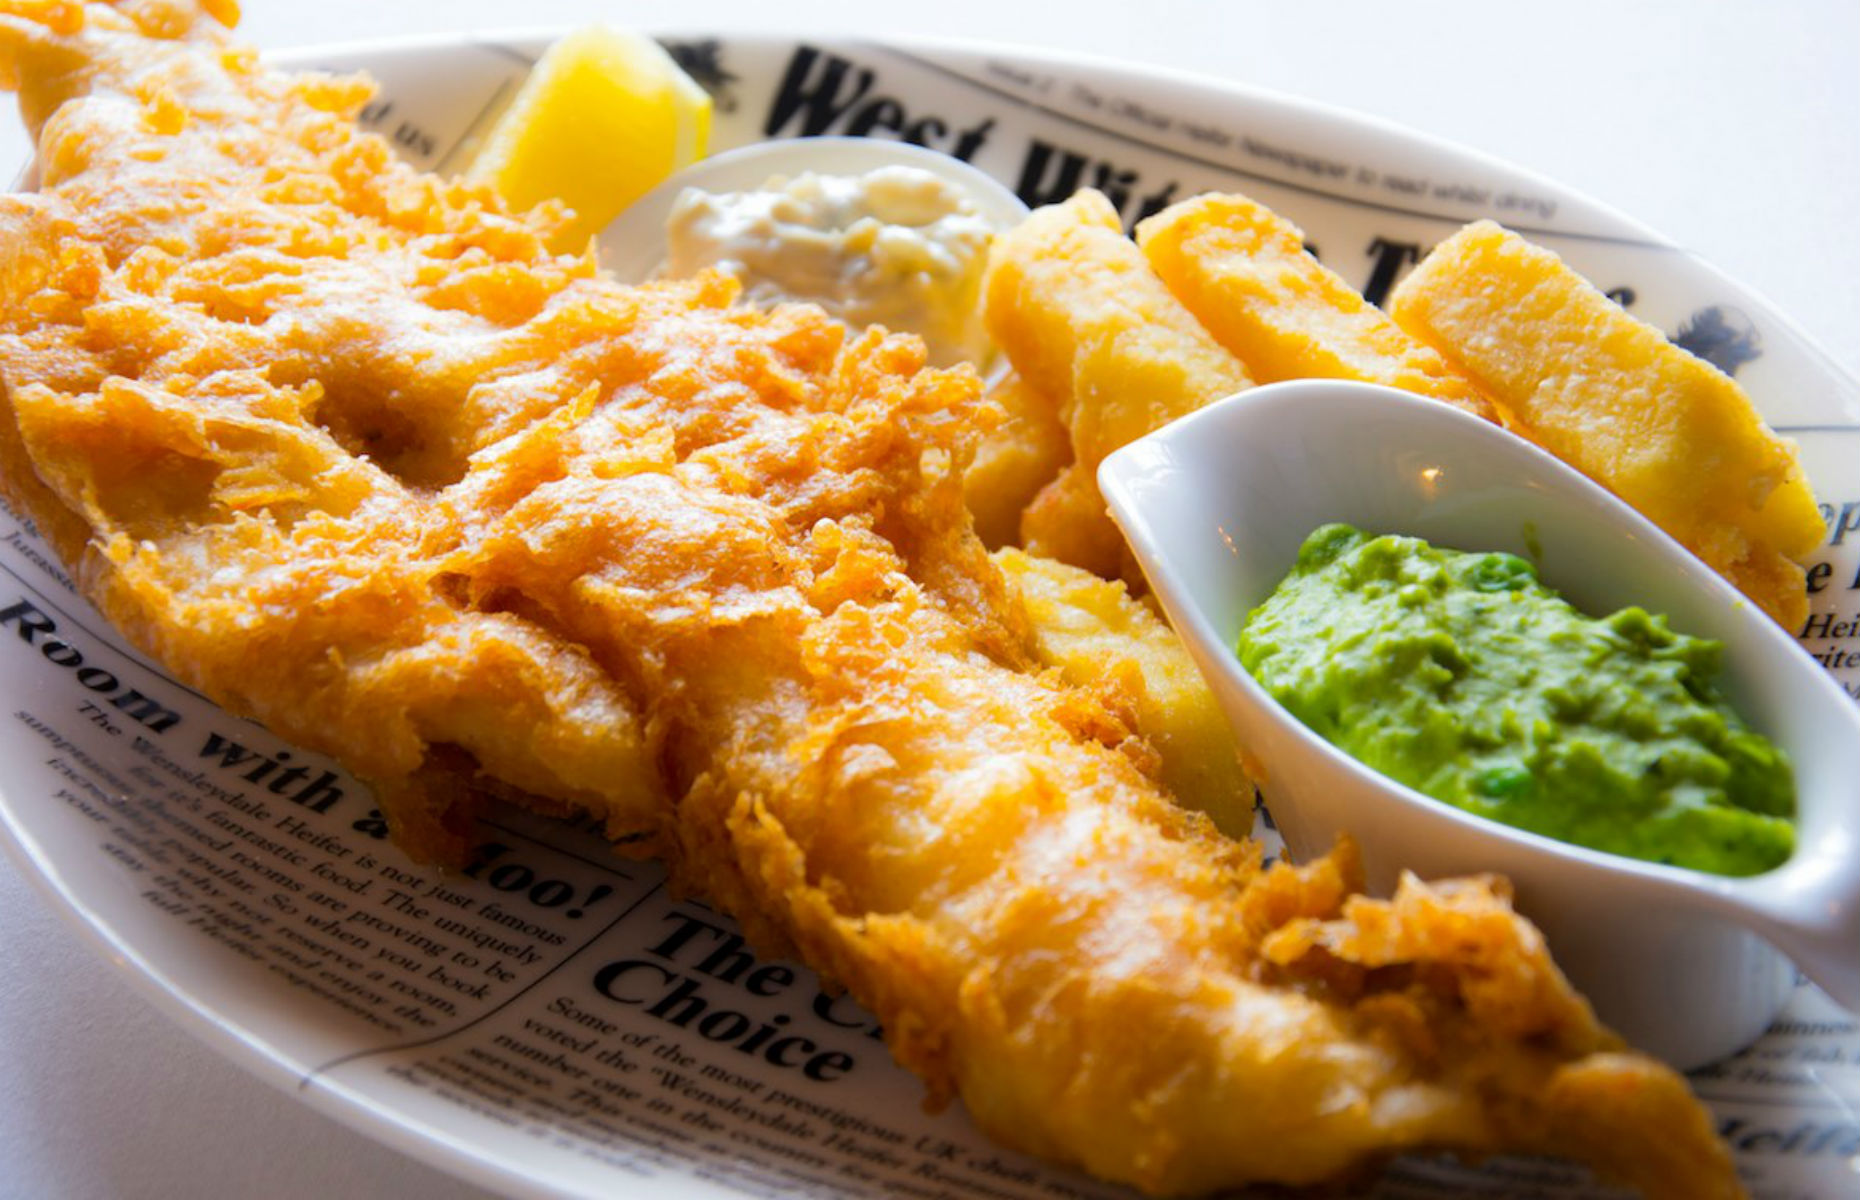 Fish and chips at Wensleydale Heifer (Image: The Wensleydale Heifer/Facebook)